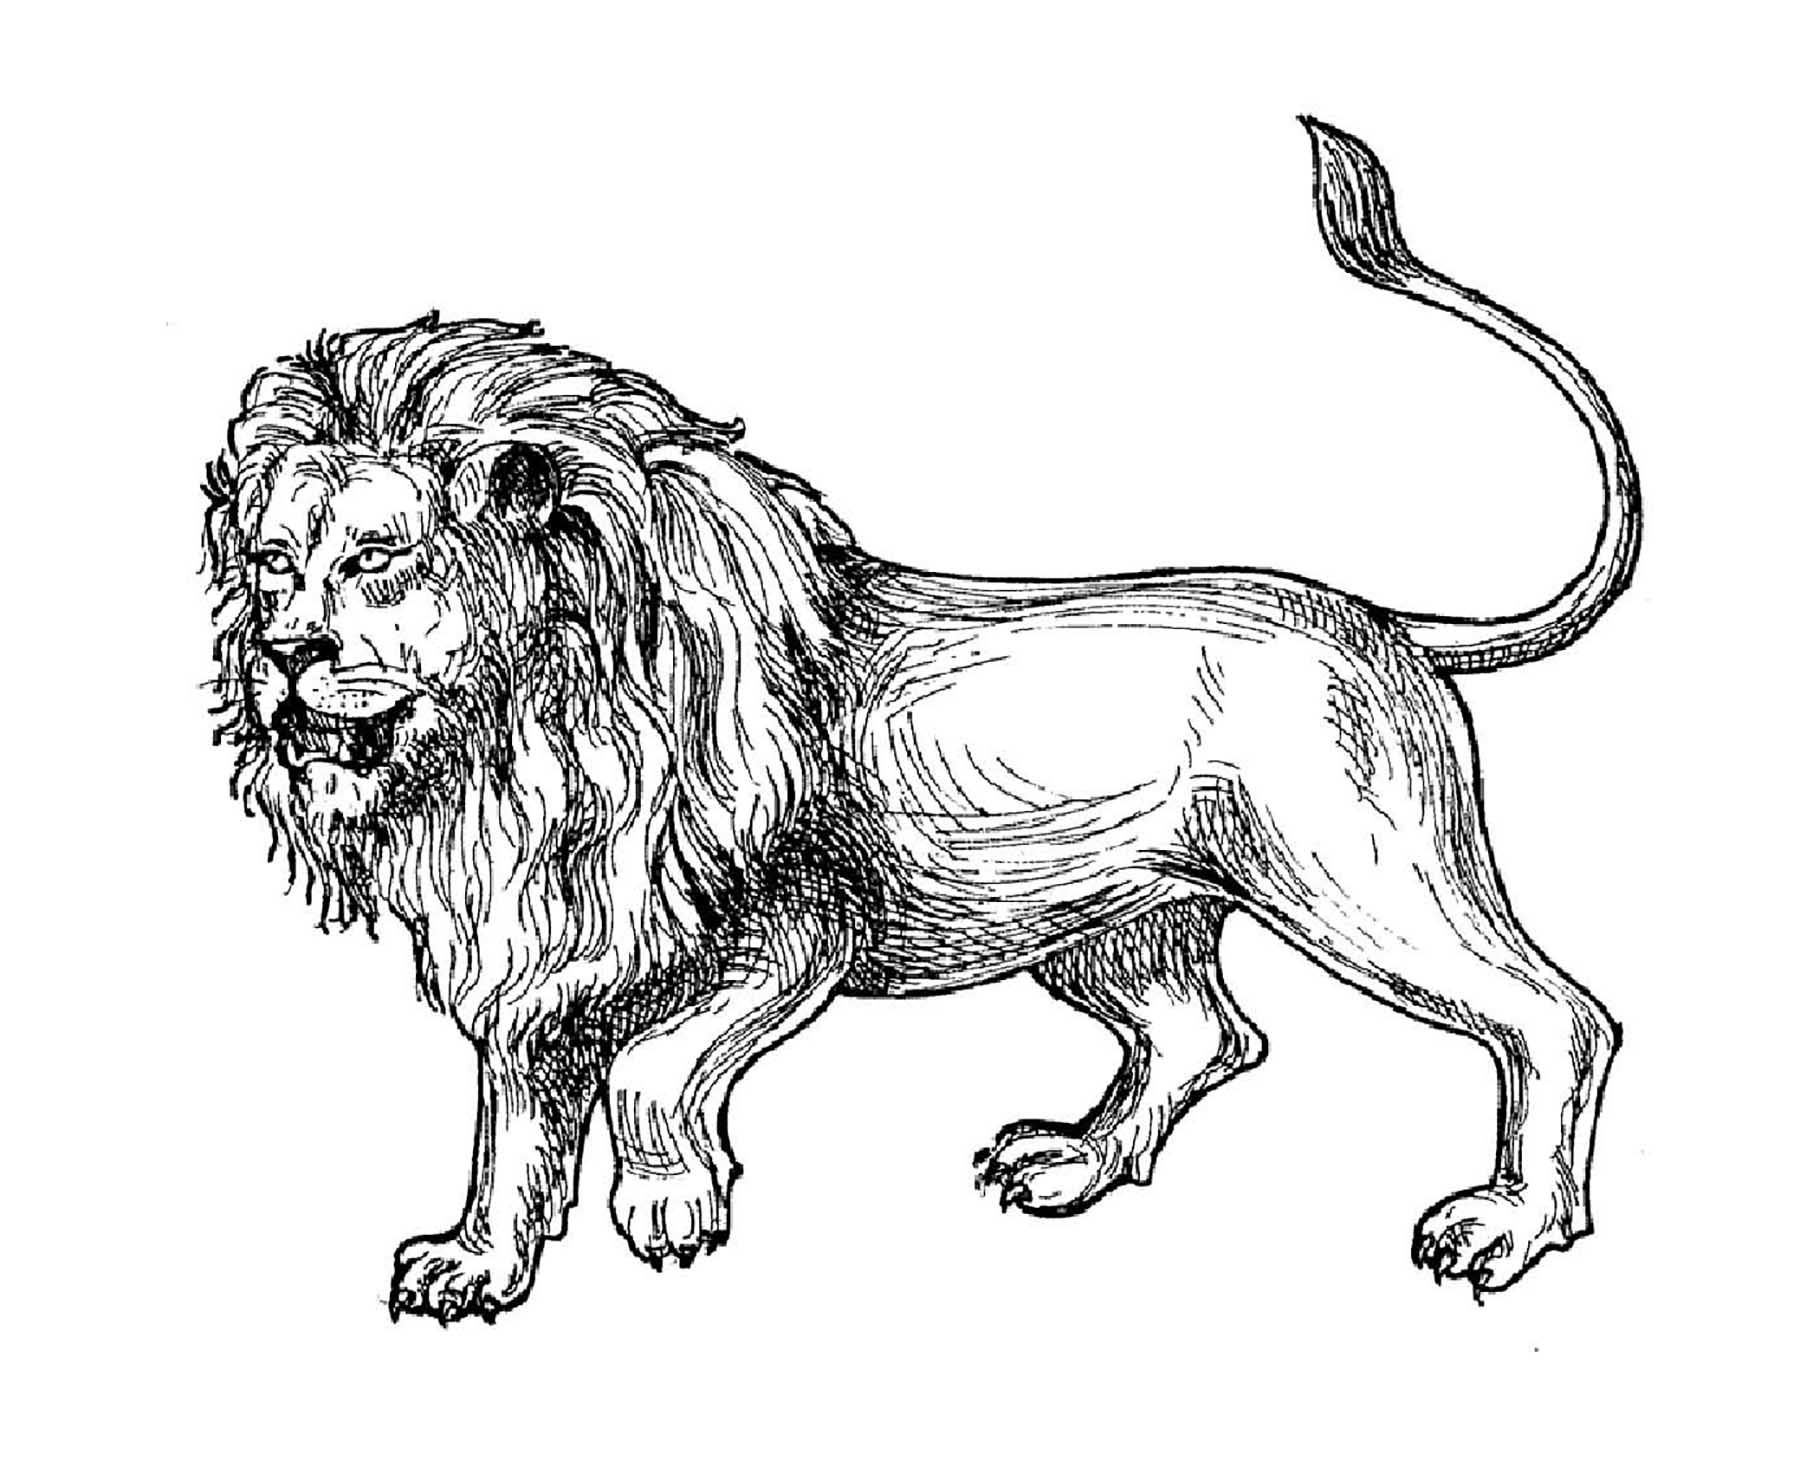 coloring page of a lion lion cartoon drawing at getdrawings free download of a lion coloring page